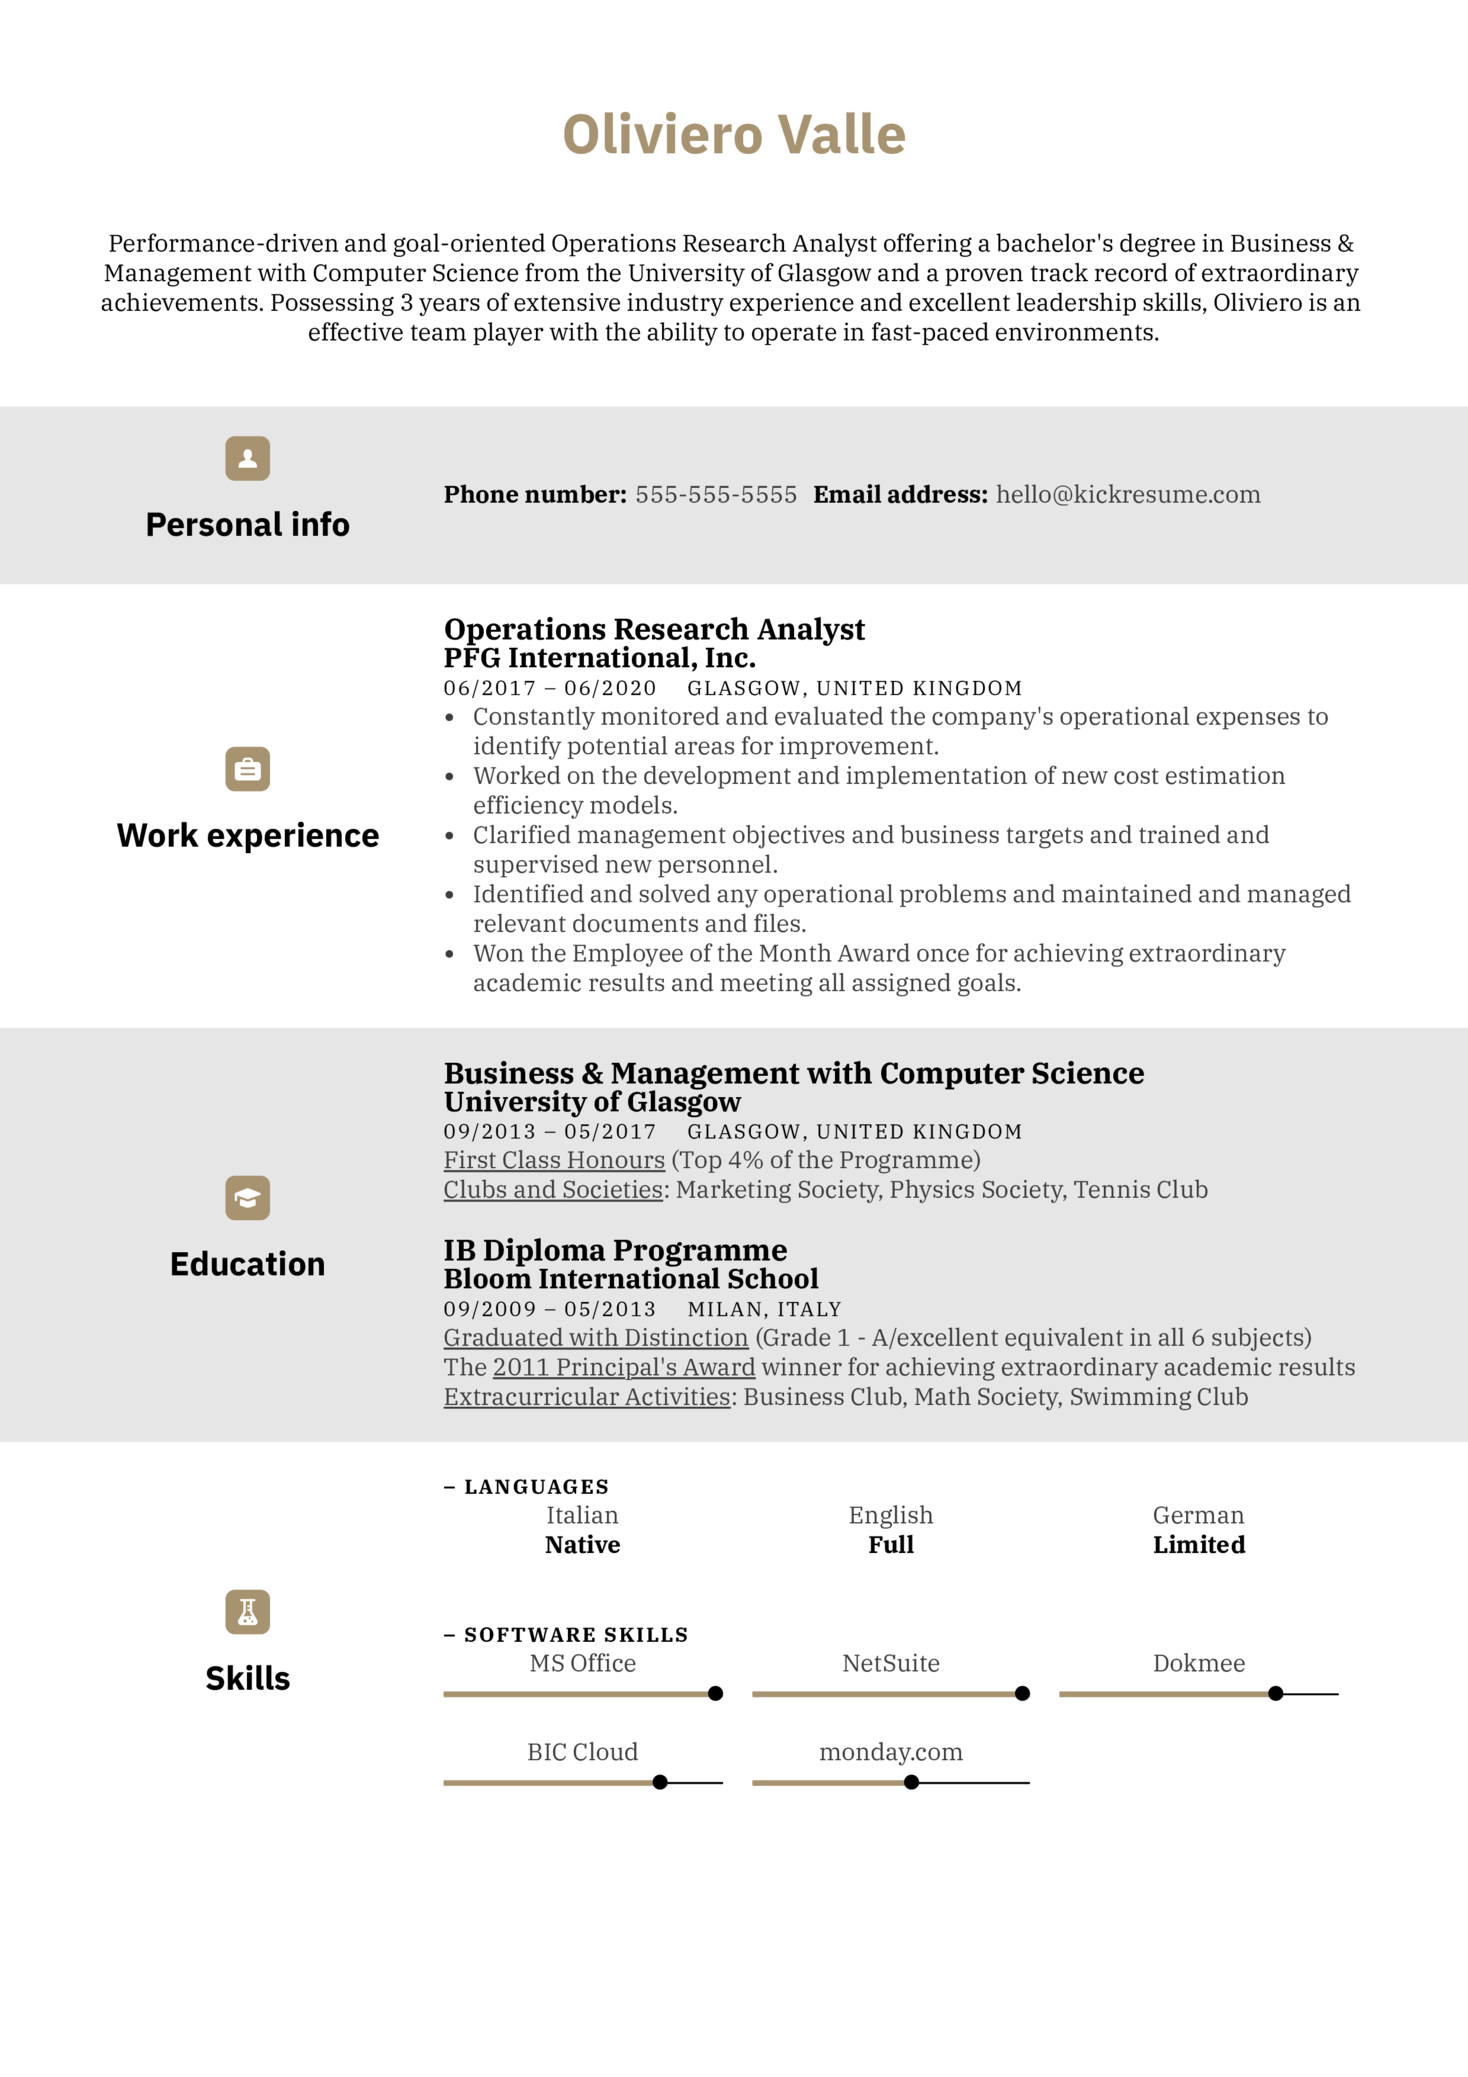 Operations Research Analyst Resume Example (Part 1)